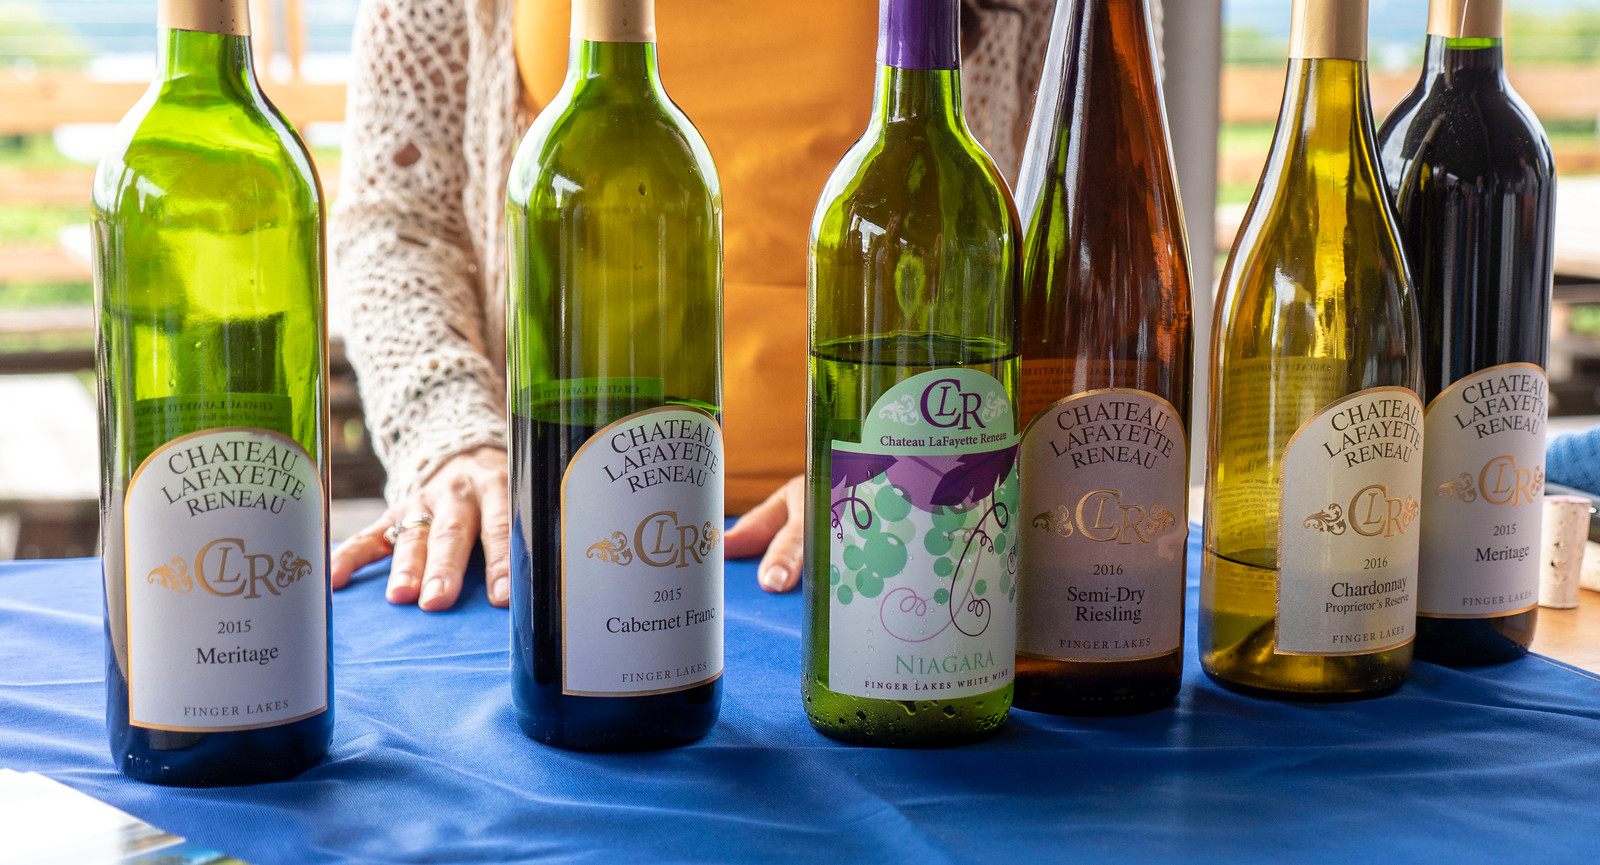 Vegan Wineries: 10 Best Wineries on Seneca Lake NY - Chateau LaFayette Reneau